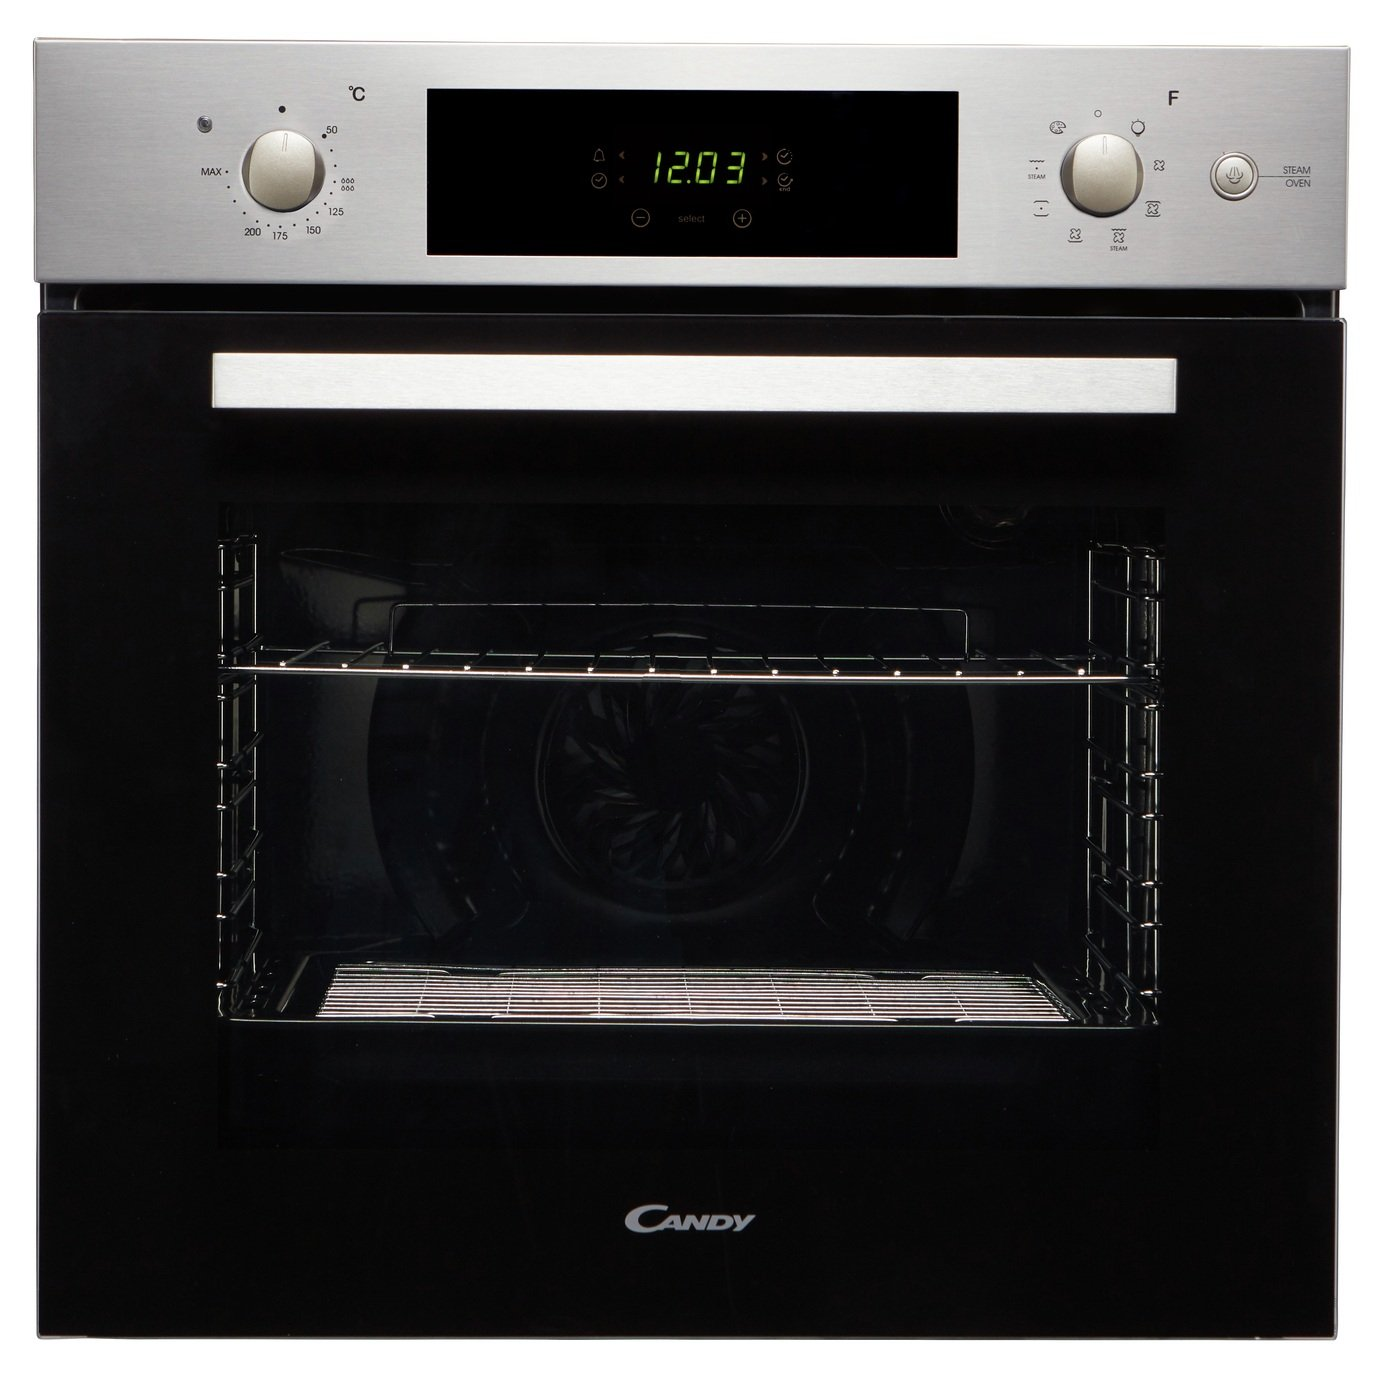 Candy FCP651SX/E Single Steam Oven - Stainless Steel